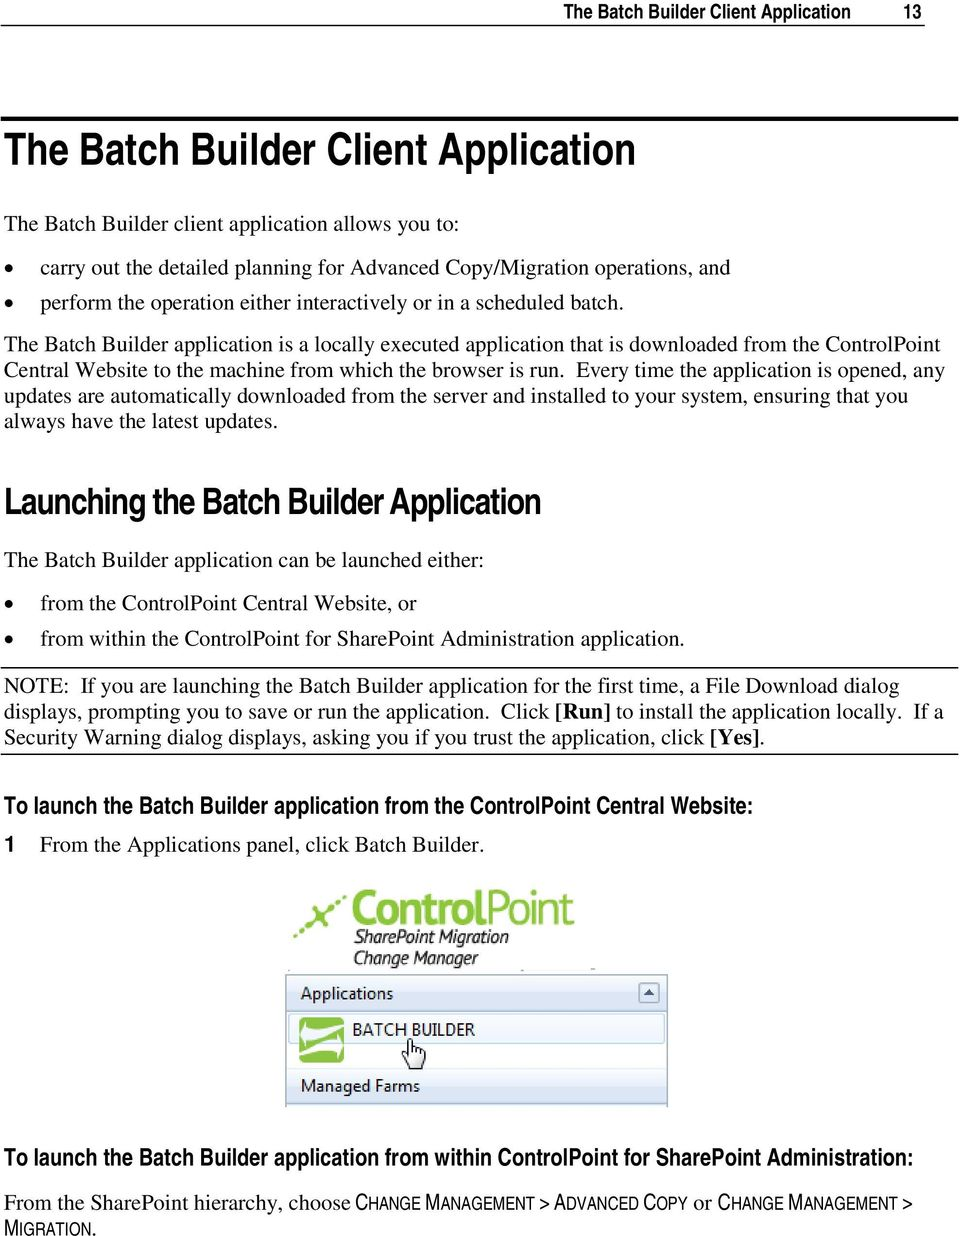 The Batch Builder application is a locally executed application that is downloaded from the ControlPoint Central Website to the machine from which the browser is run.